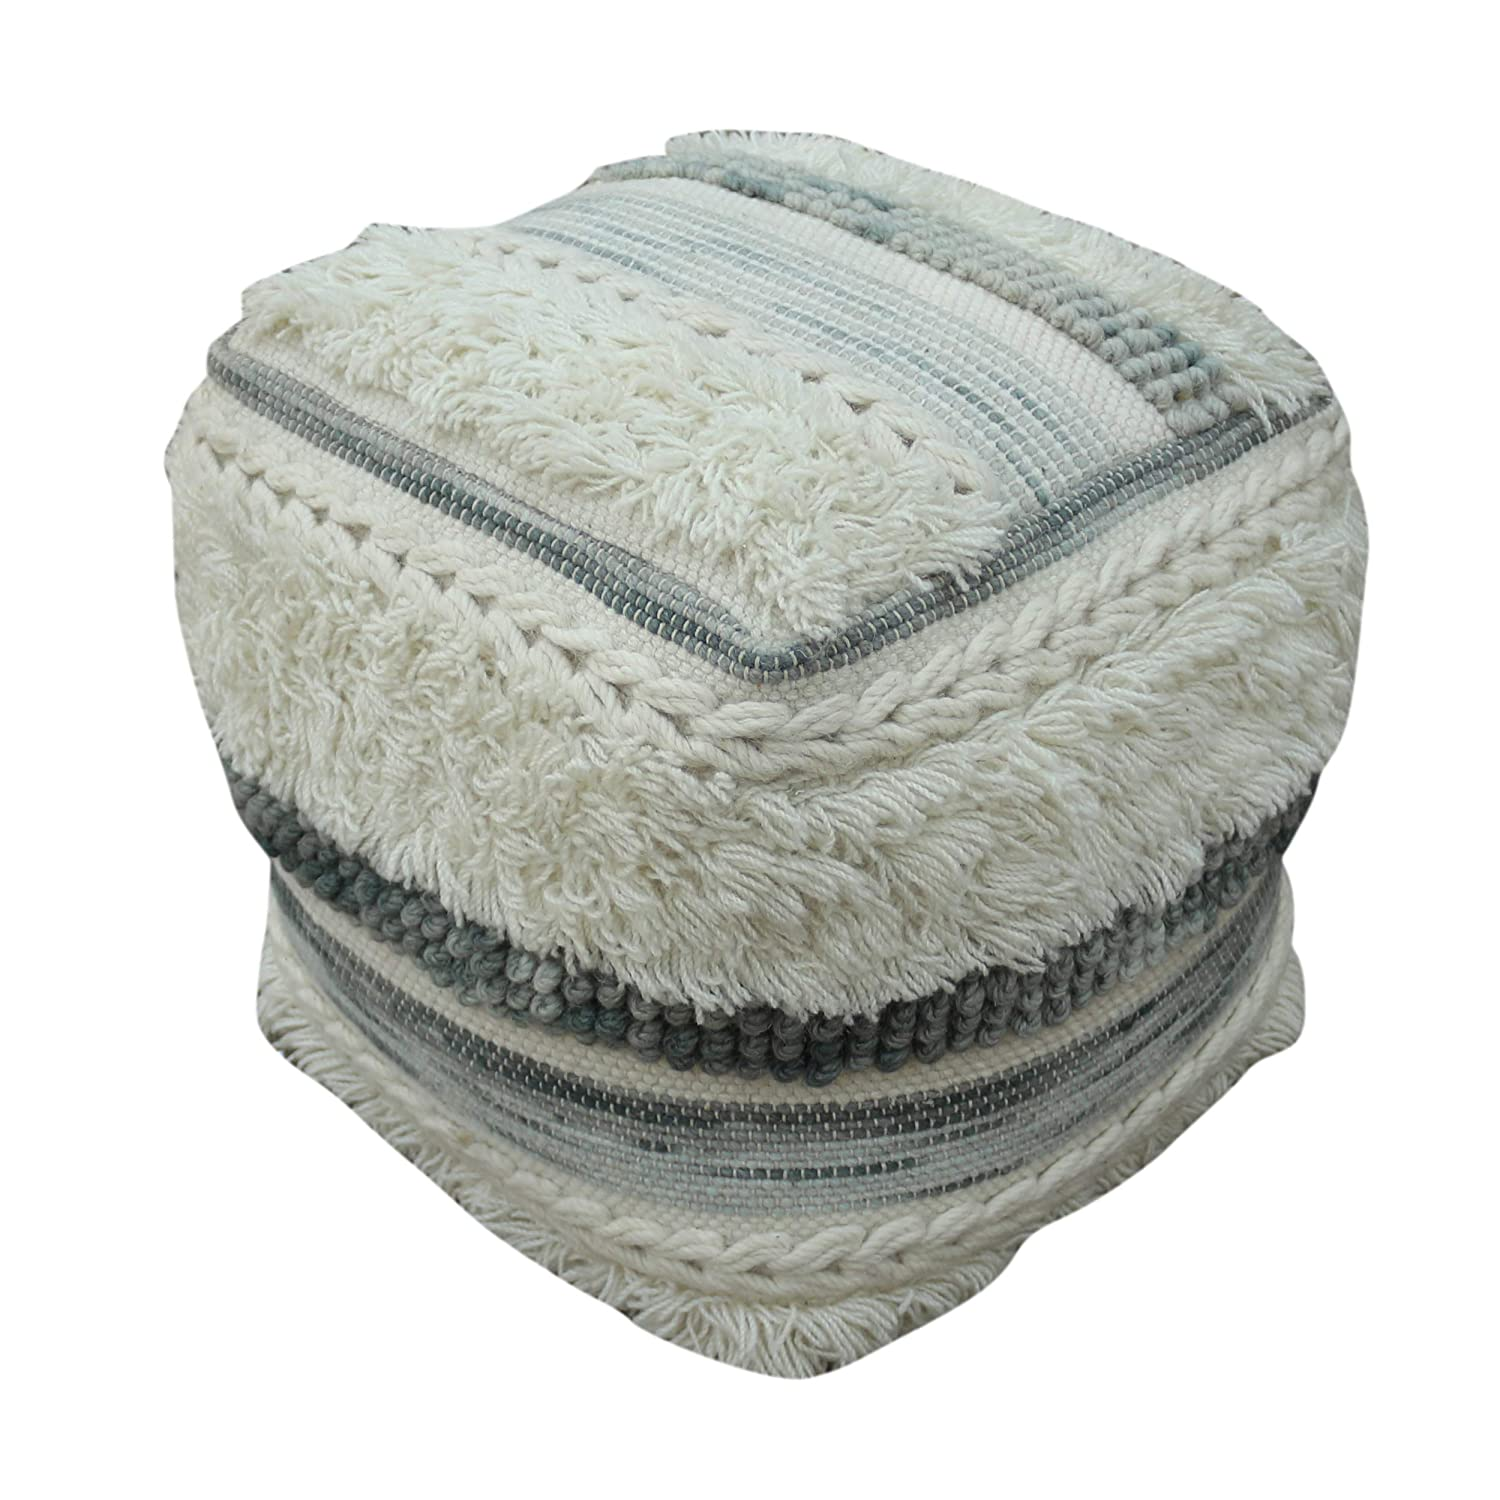 Curry Boho Wool Pouf, Ivory and Gray Great Deal Furniture